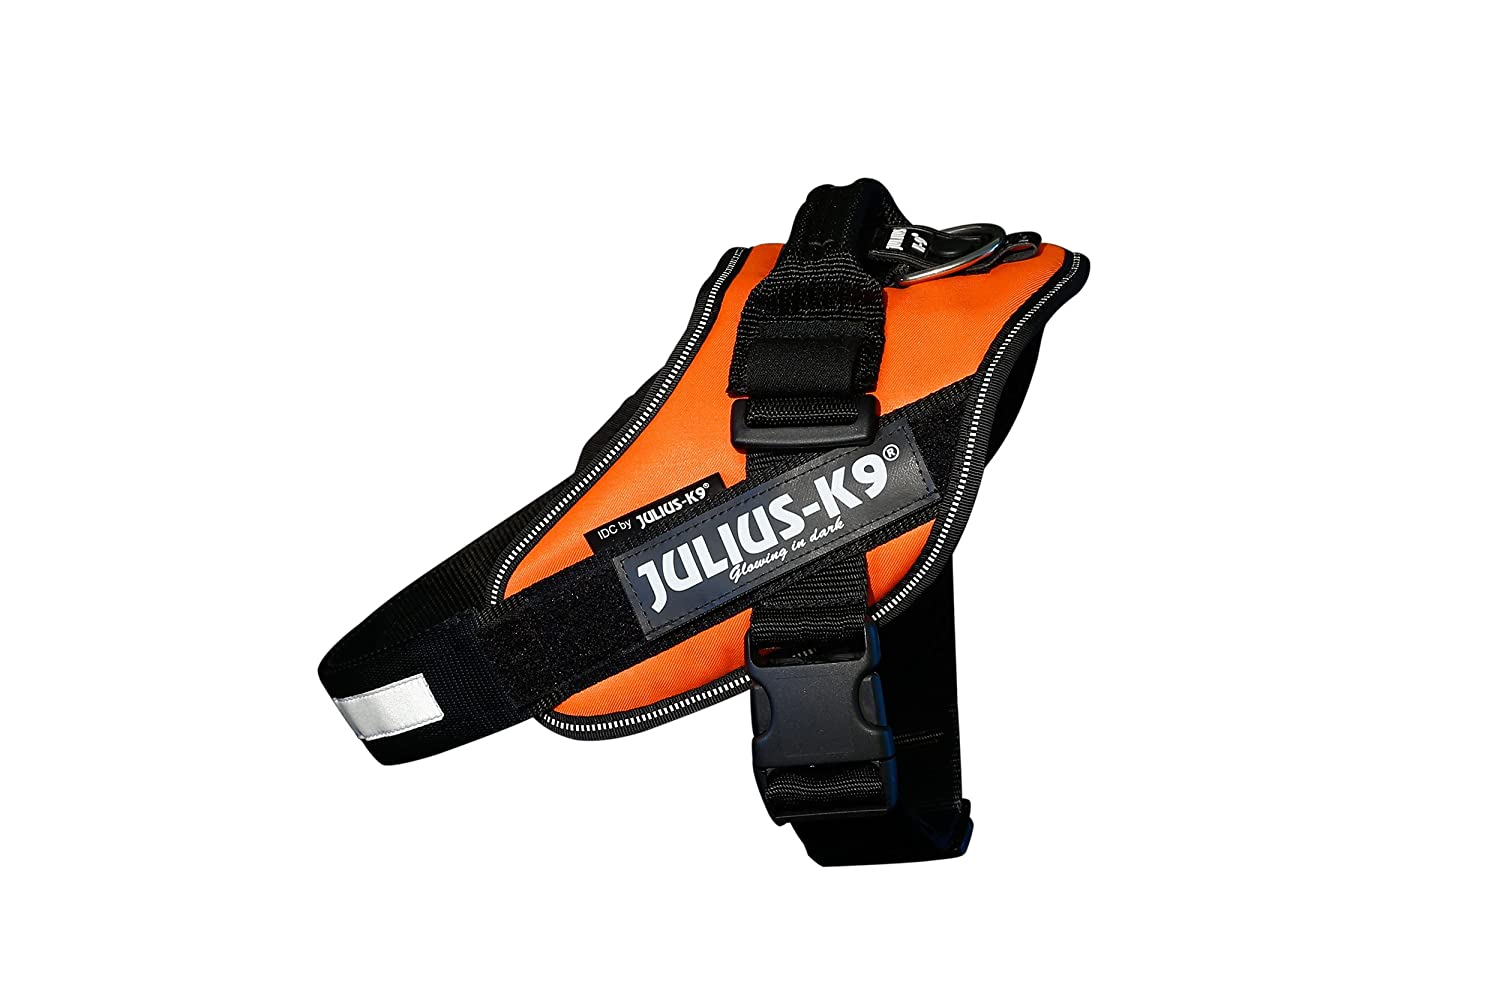 Julius K9 16IDC-FOR-0 IDC Power Harness, Tamaño 0, Naranja UV, Orange, 0: Amazon.es: Productos para mascotas